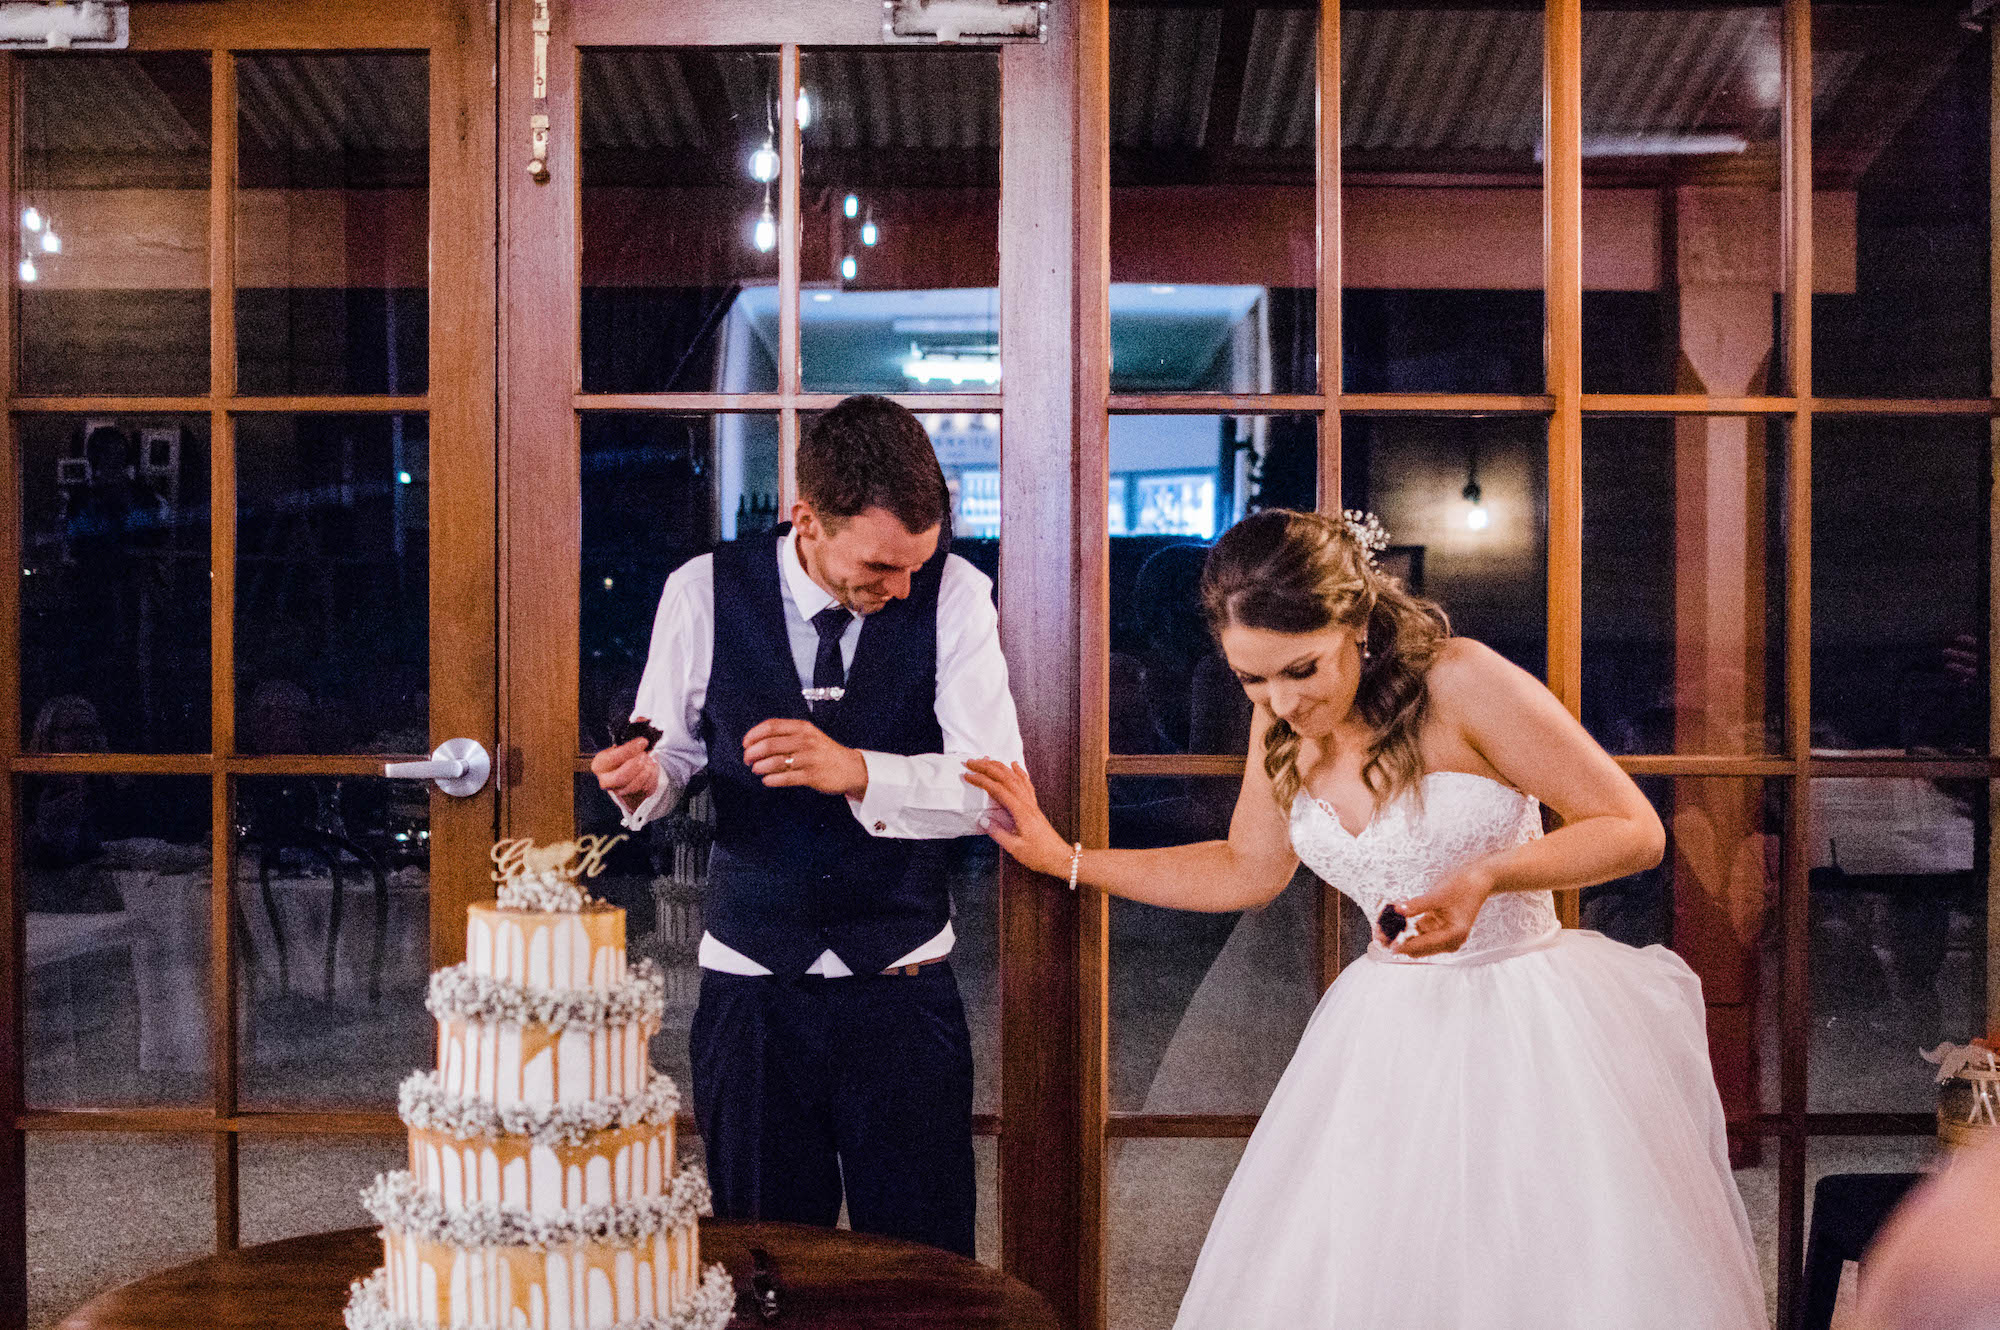 The bride & groom laugh after feeding each other cake at their Quarry Farm wedding.